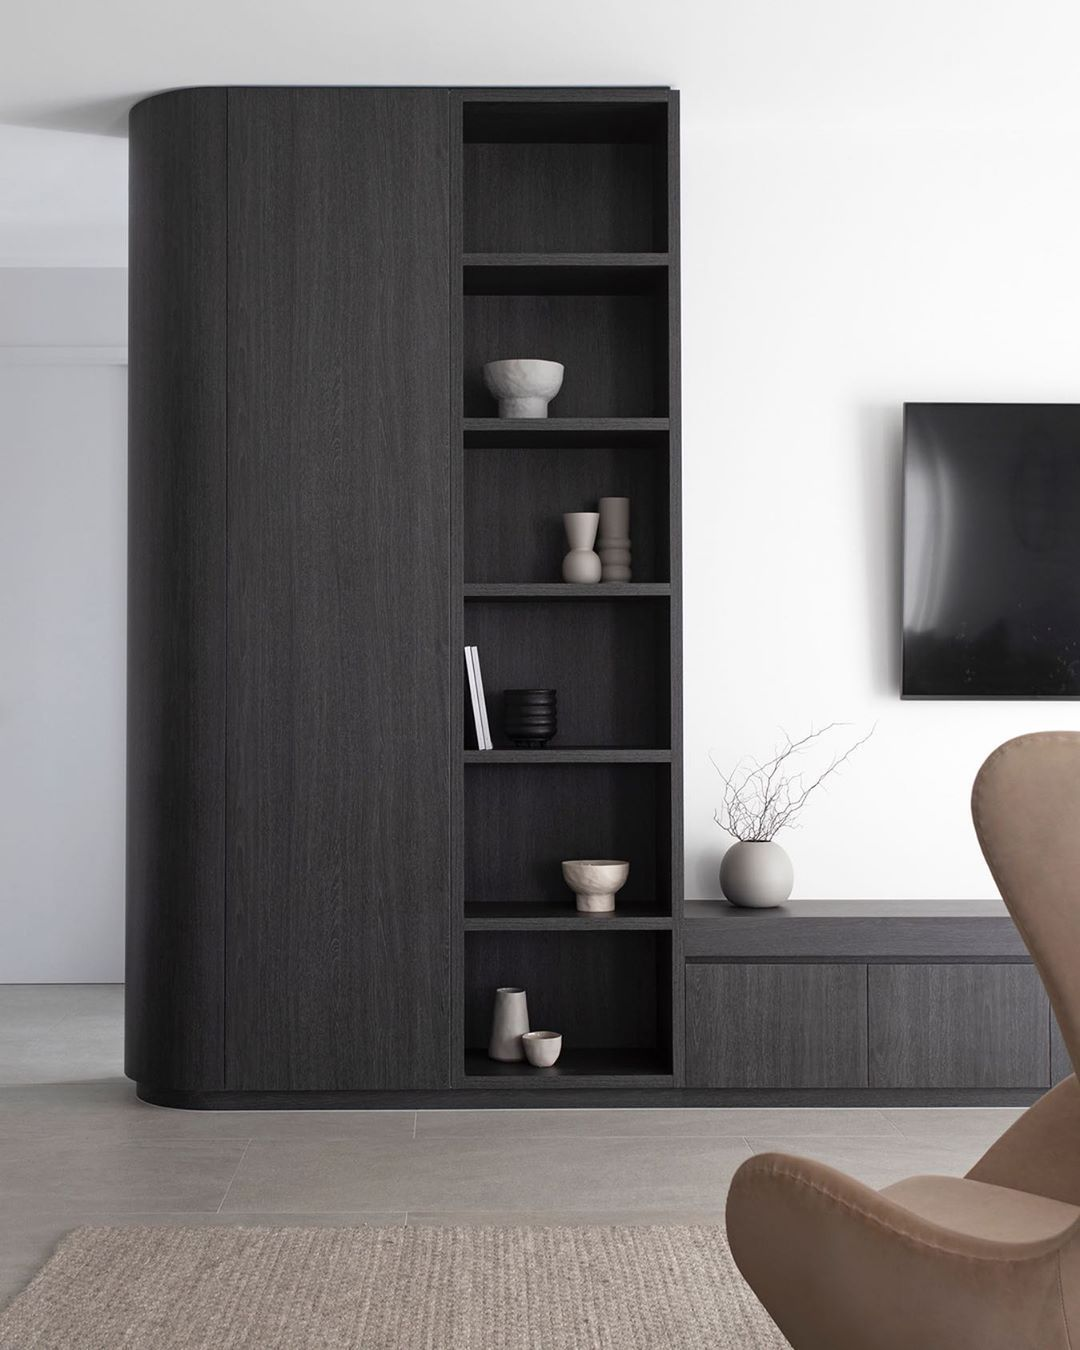 Design Styling Reno Tips On Instagram Let S Talk Home Storage Ample Storage Is Actually In 2020 Bookshelves Built In Hidden Storage Living Spaces